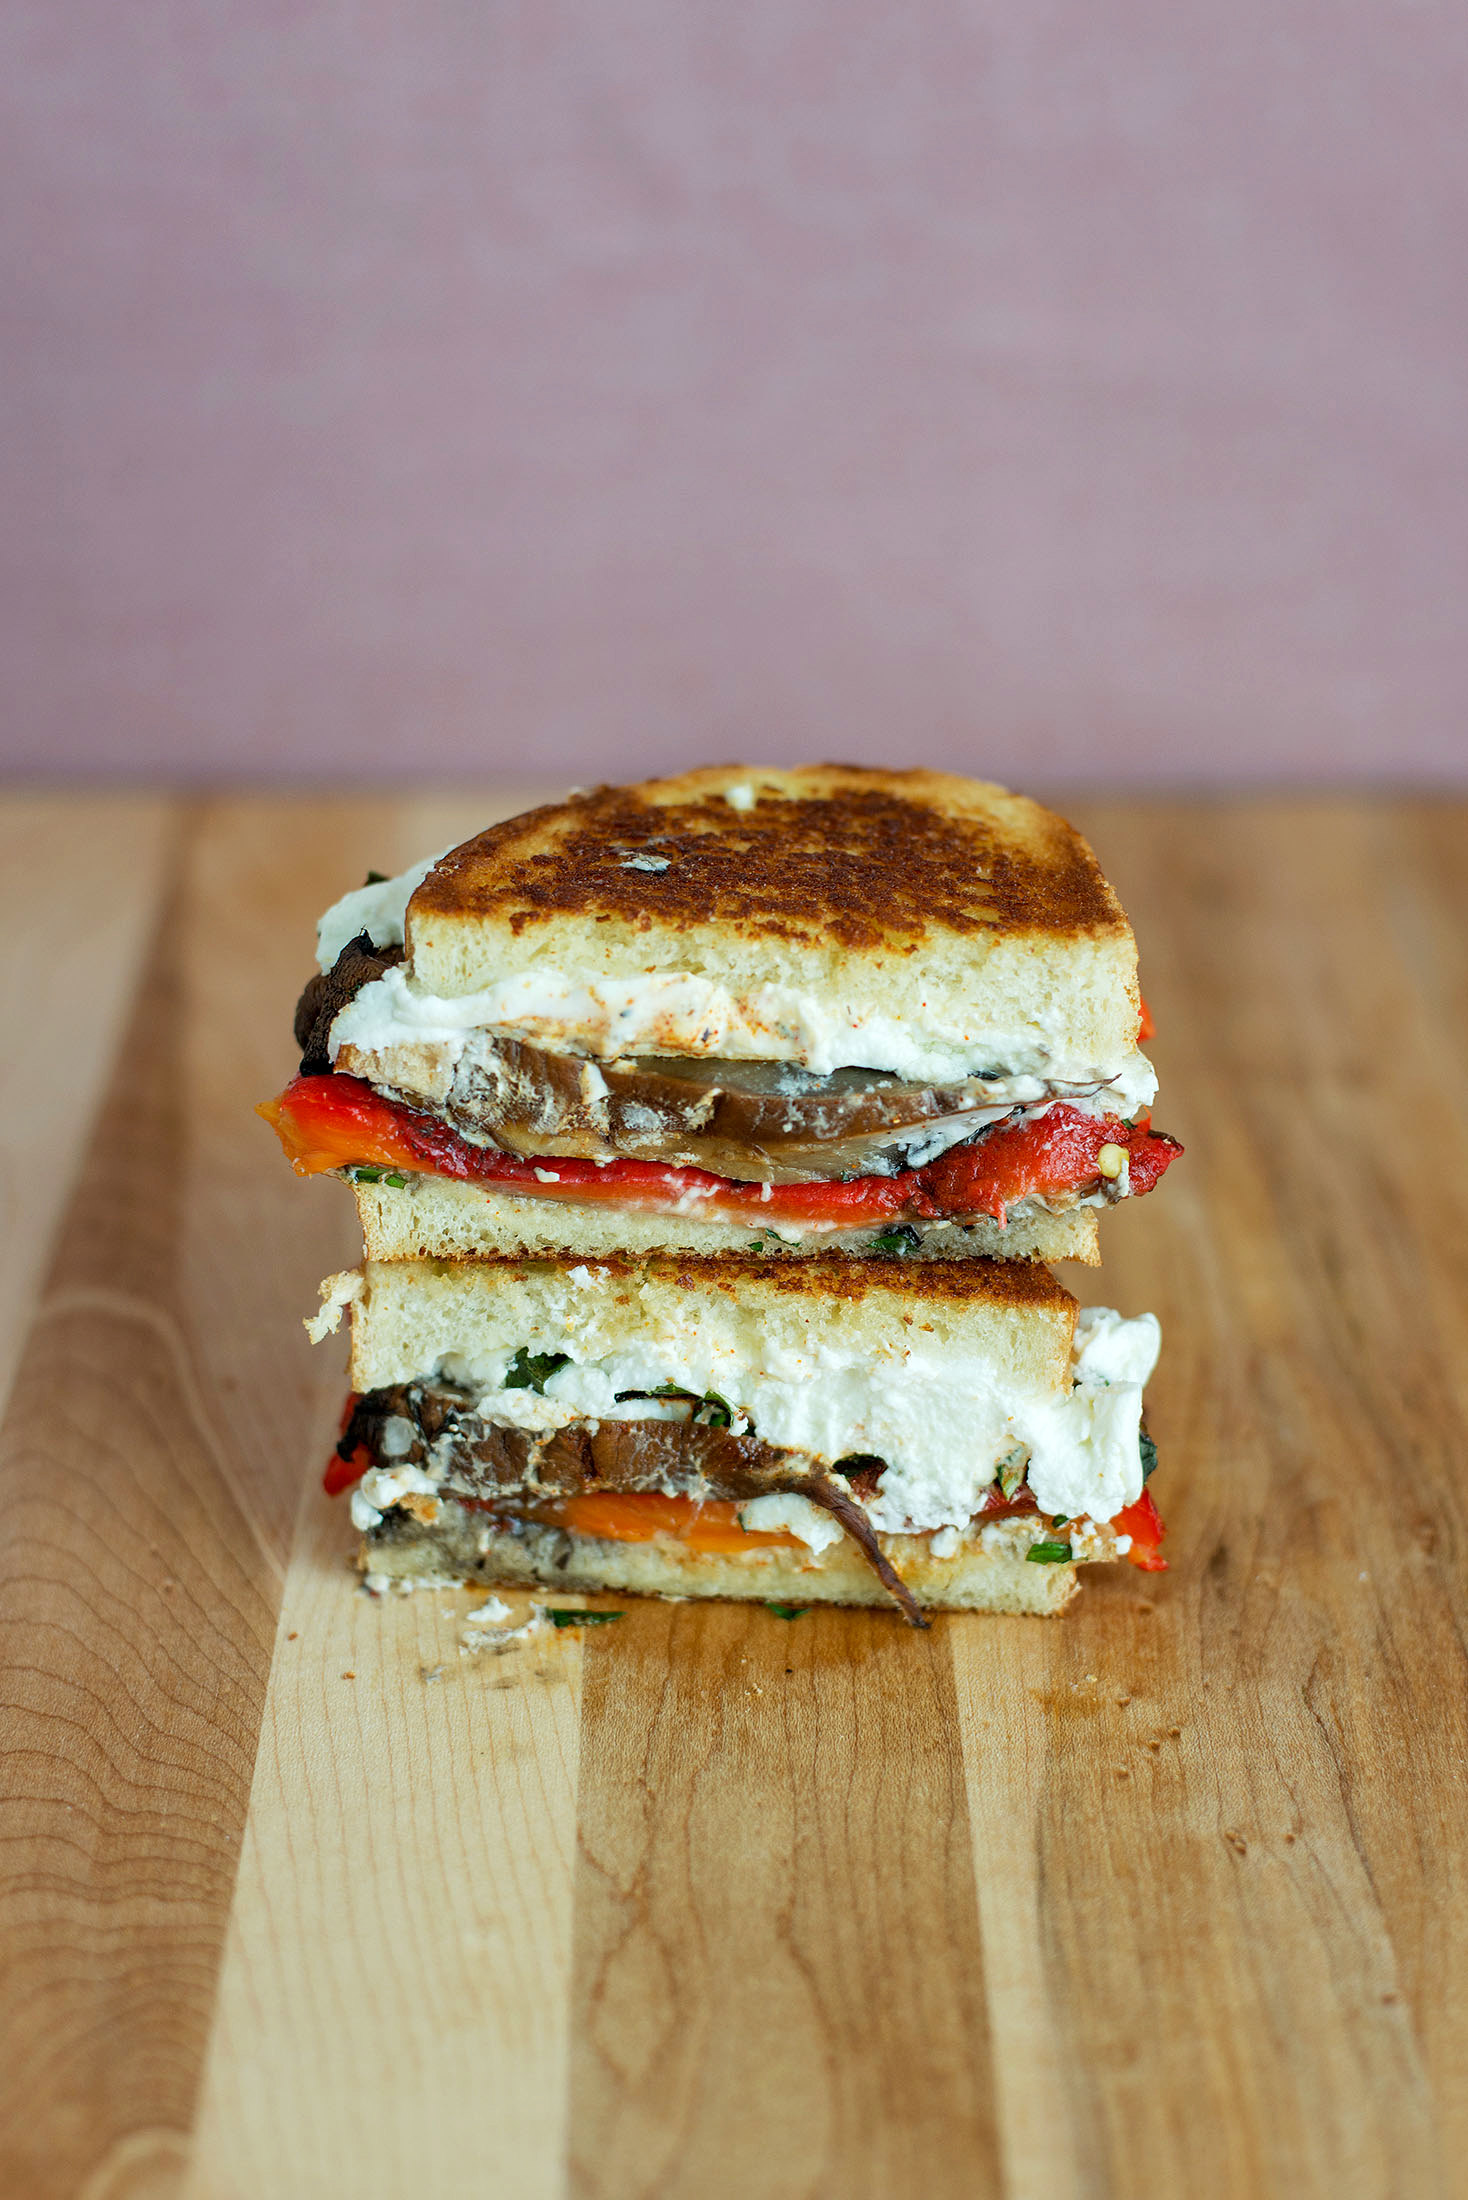 Grilled Portobello Mushroom And Goat Cheese Sandwich With Smoked ...